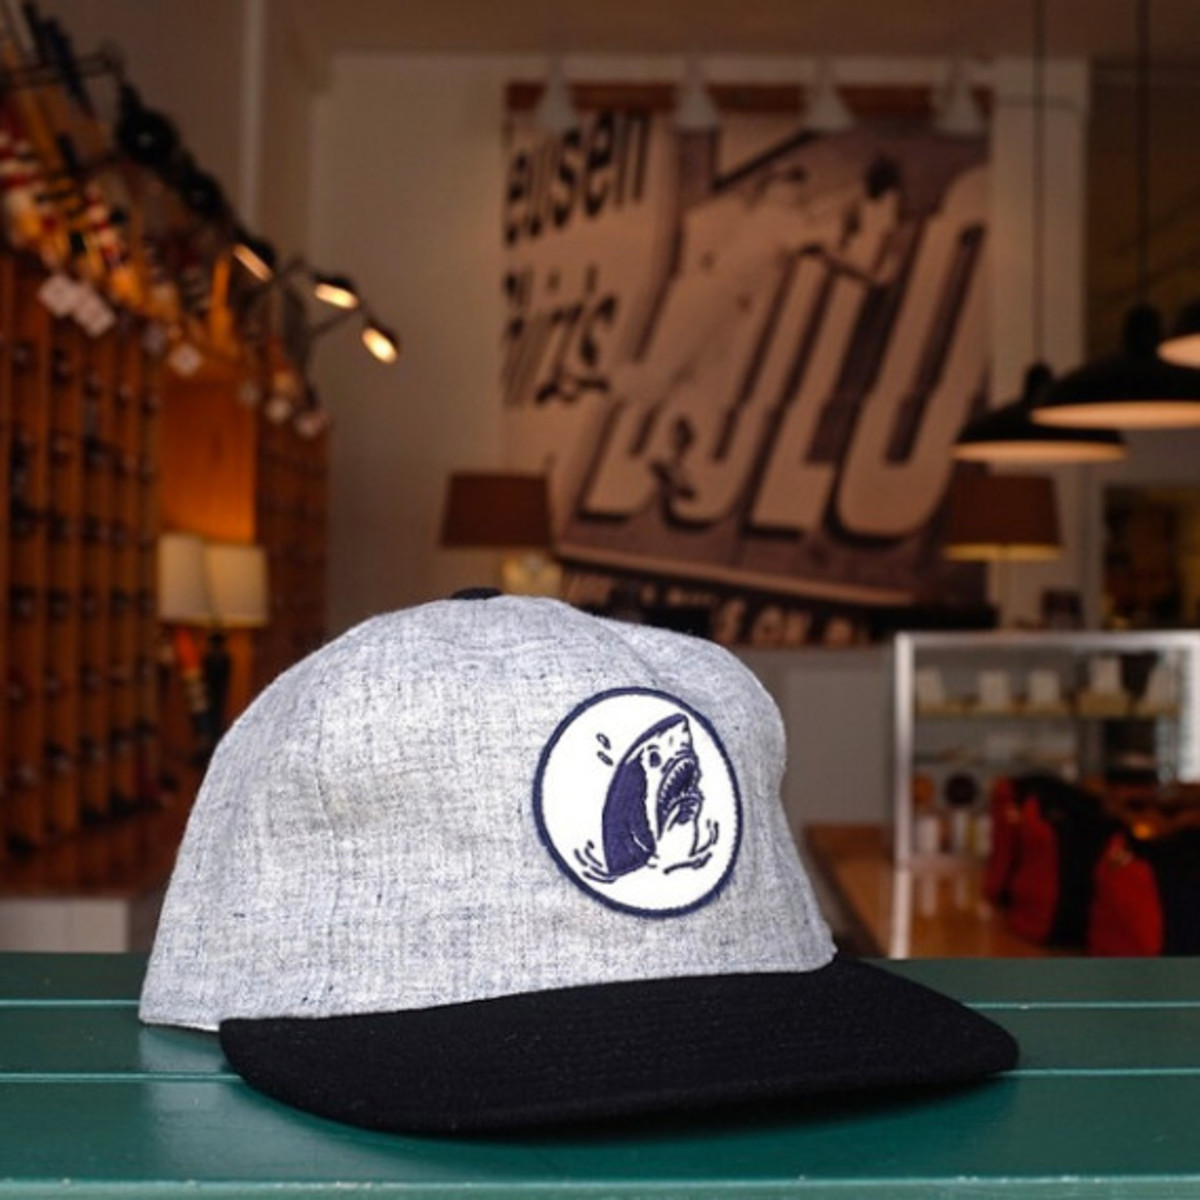 """Macklemore & Ryan Lewis x Ebbets Field Flannels - """"Shark Face Gang"""" Capsule Collection - 2"""